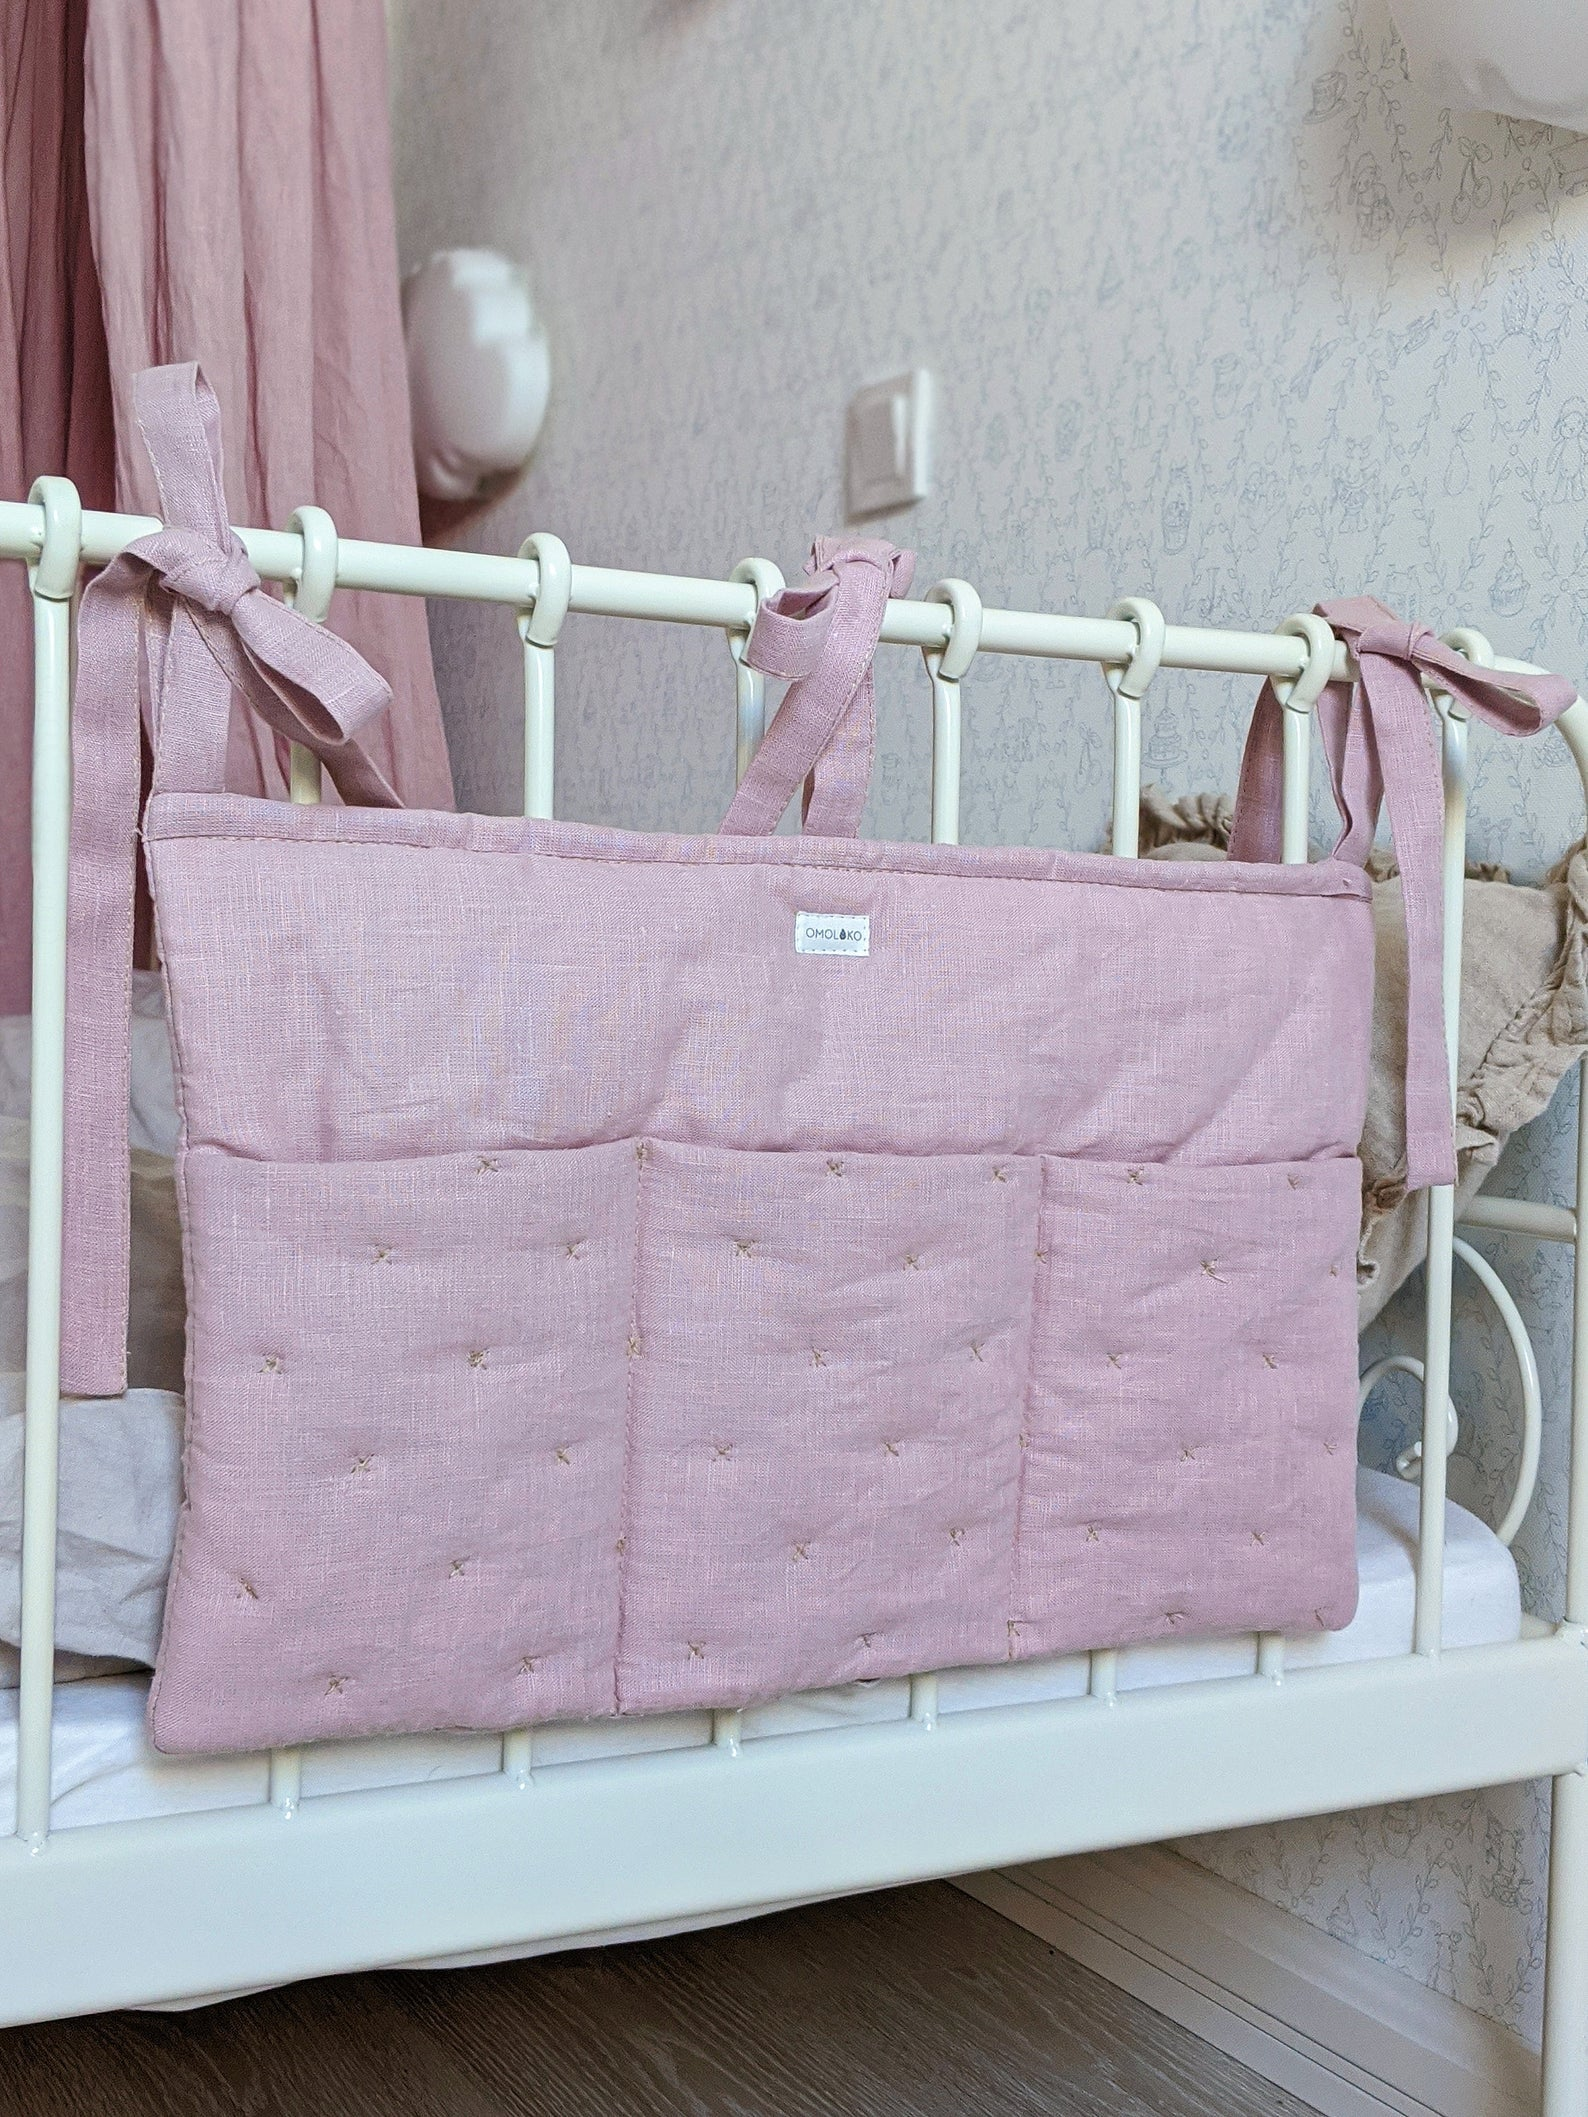 Linen Nursery Caddy